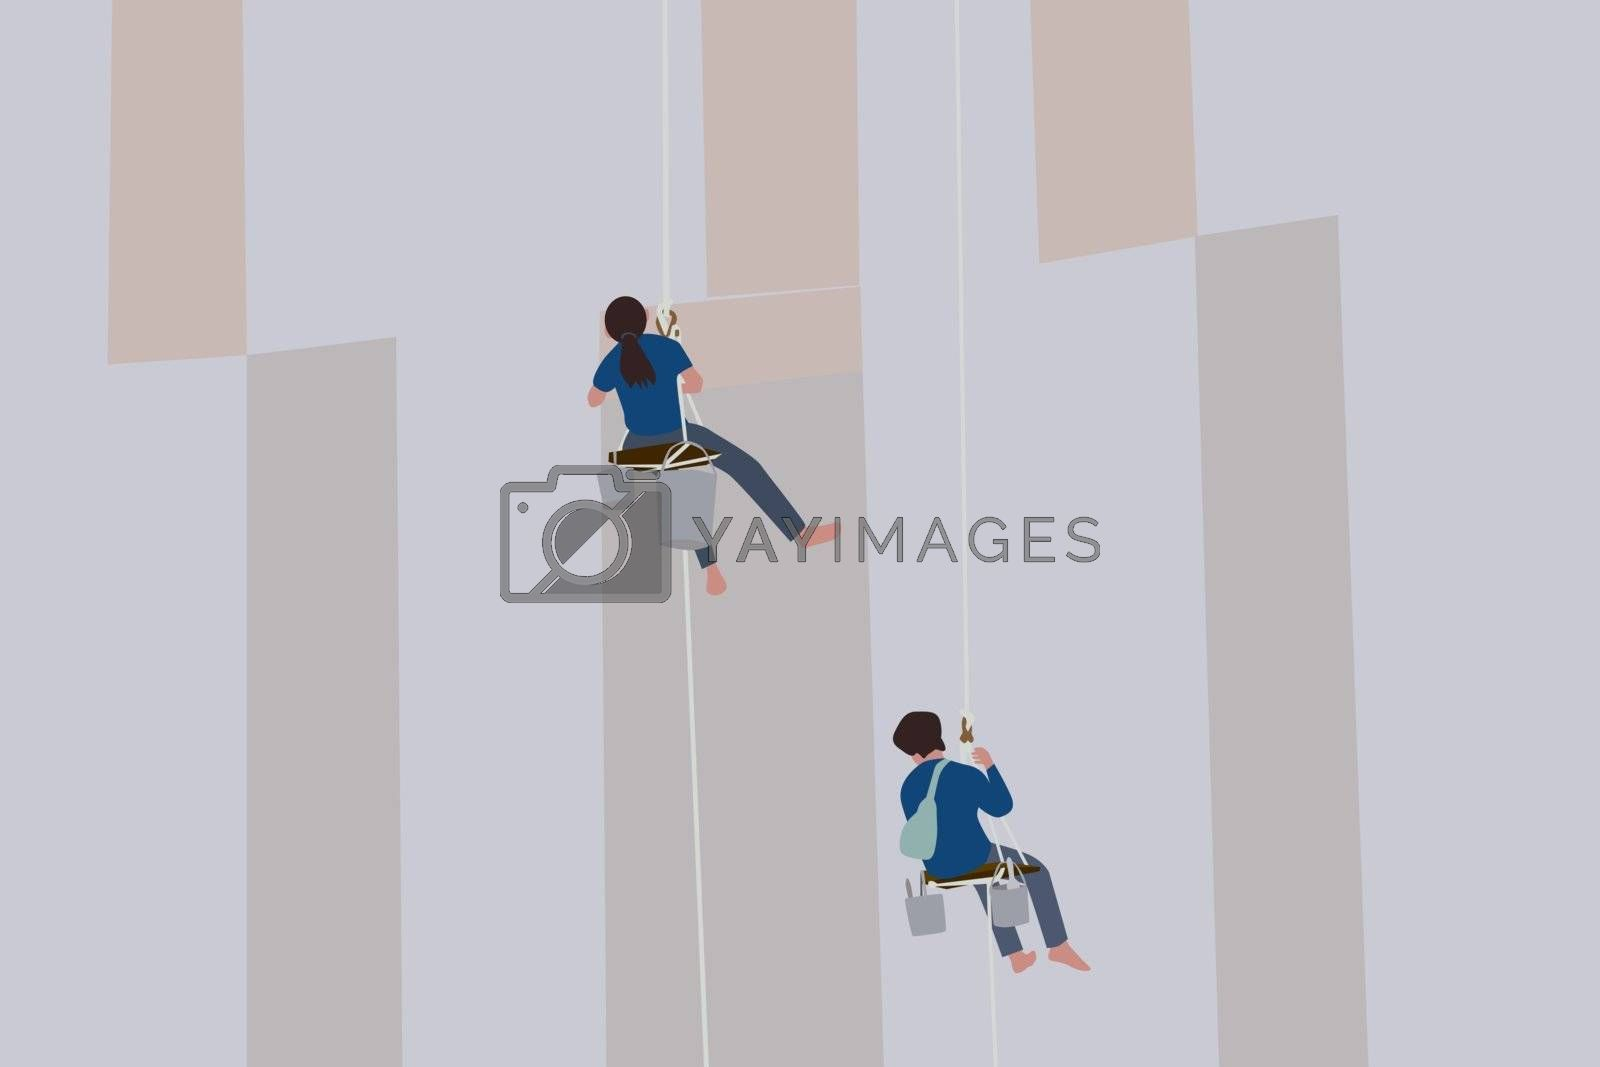 Vector of painters and harnesses hanging high on concrete wall